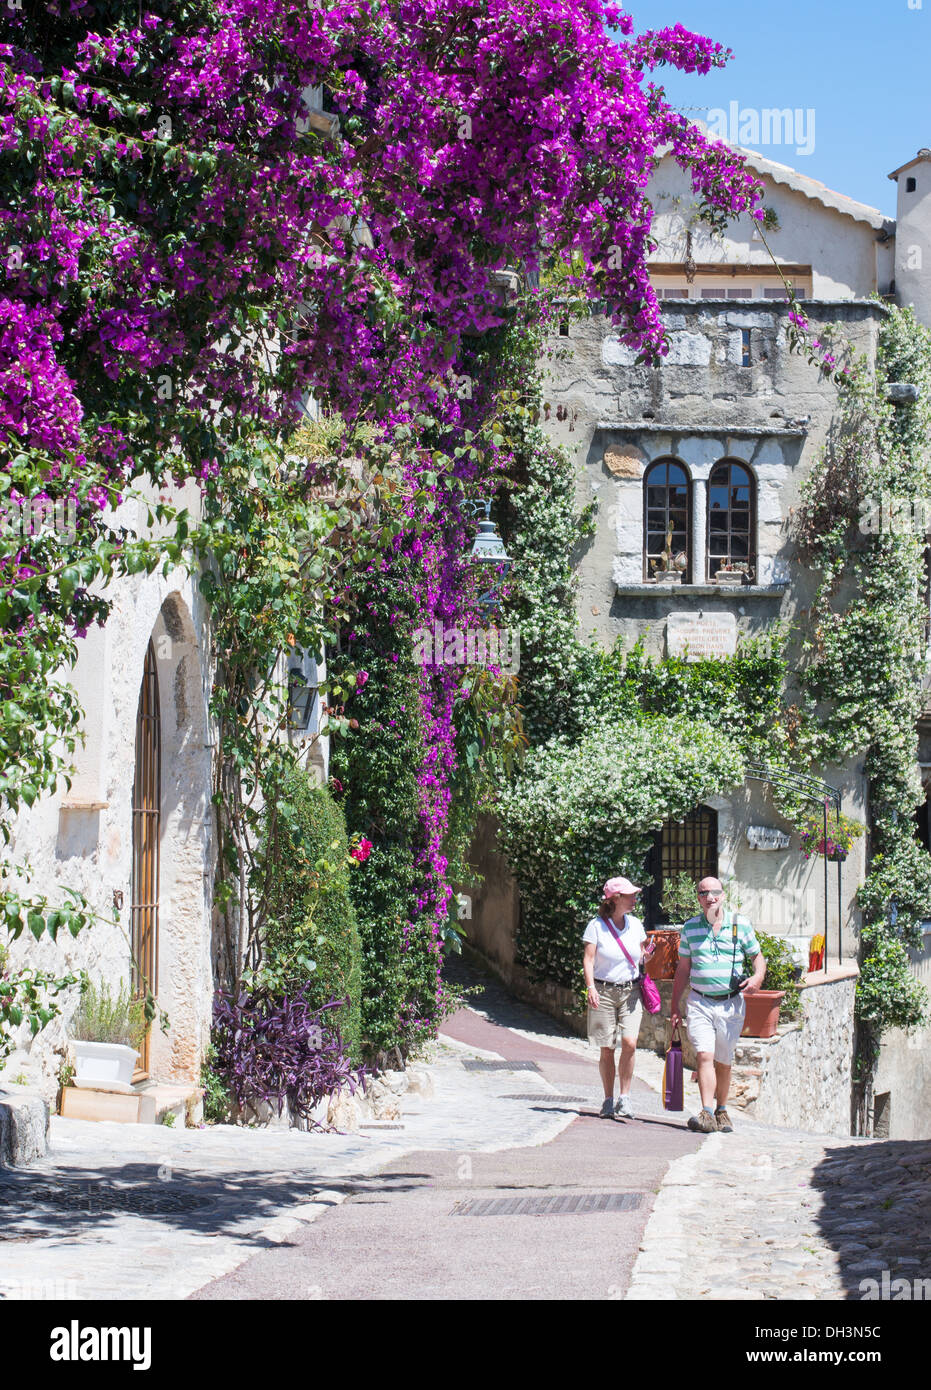 Couple walking past bougainvillea in the village of St Paul de Vence, France, Europe Stock Photo